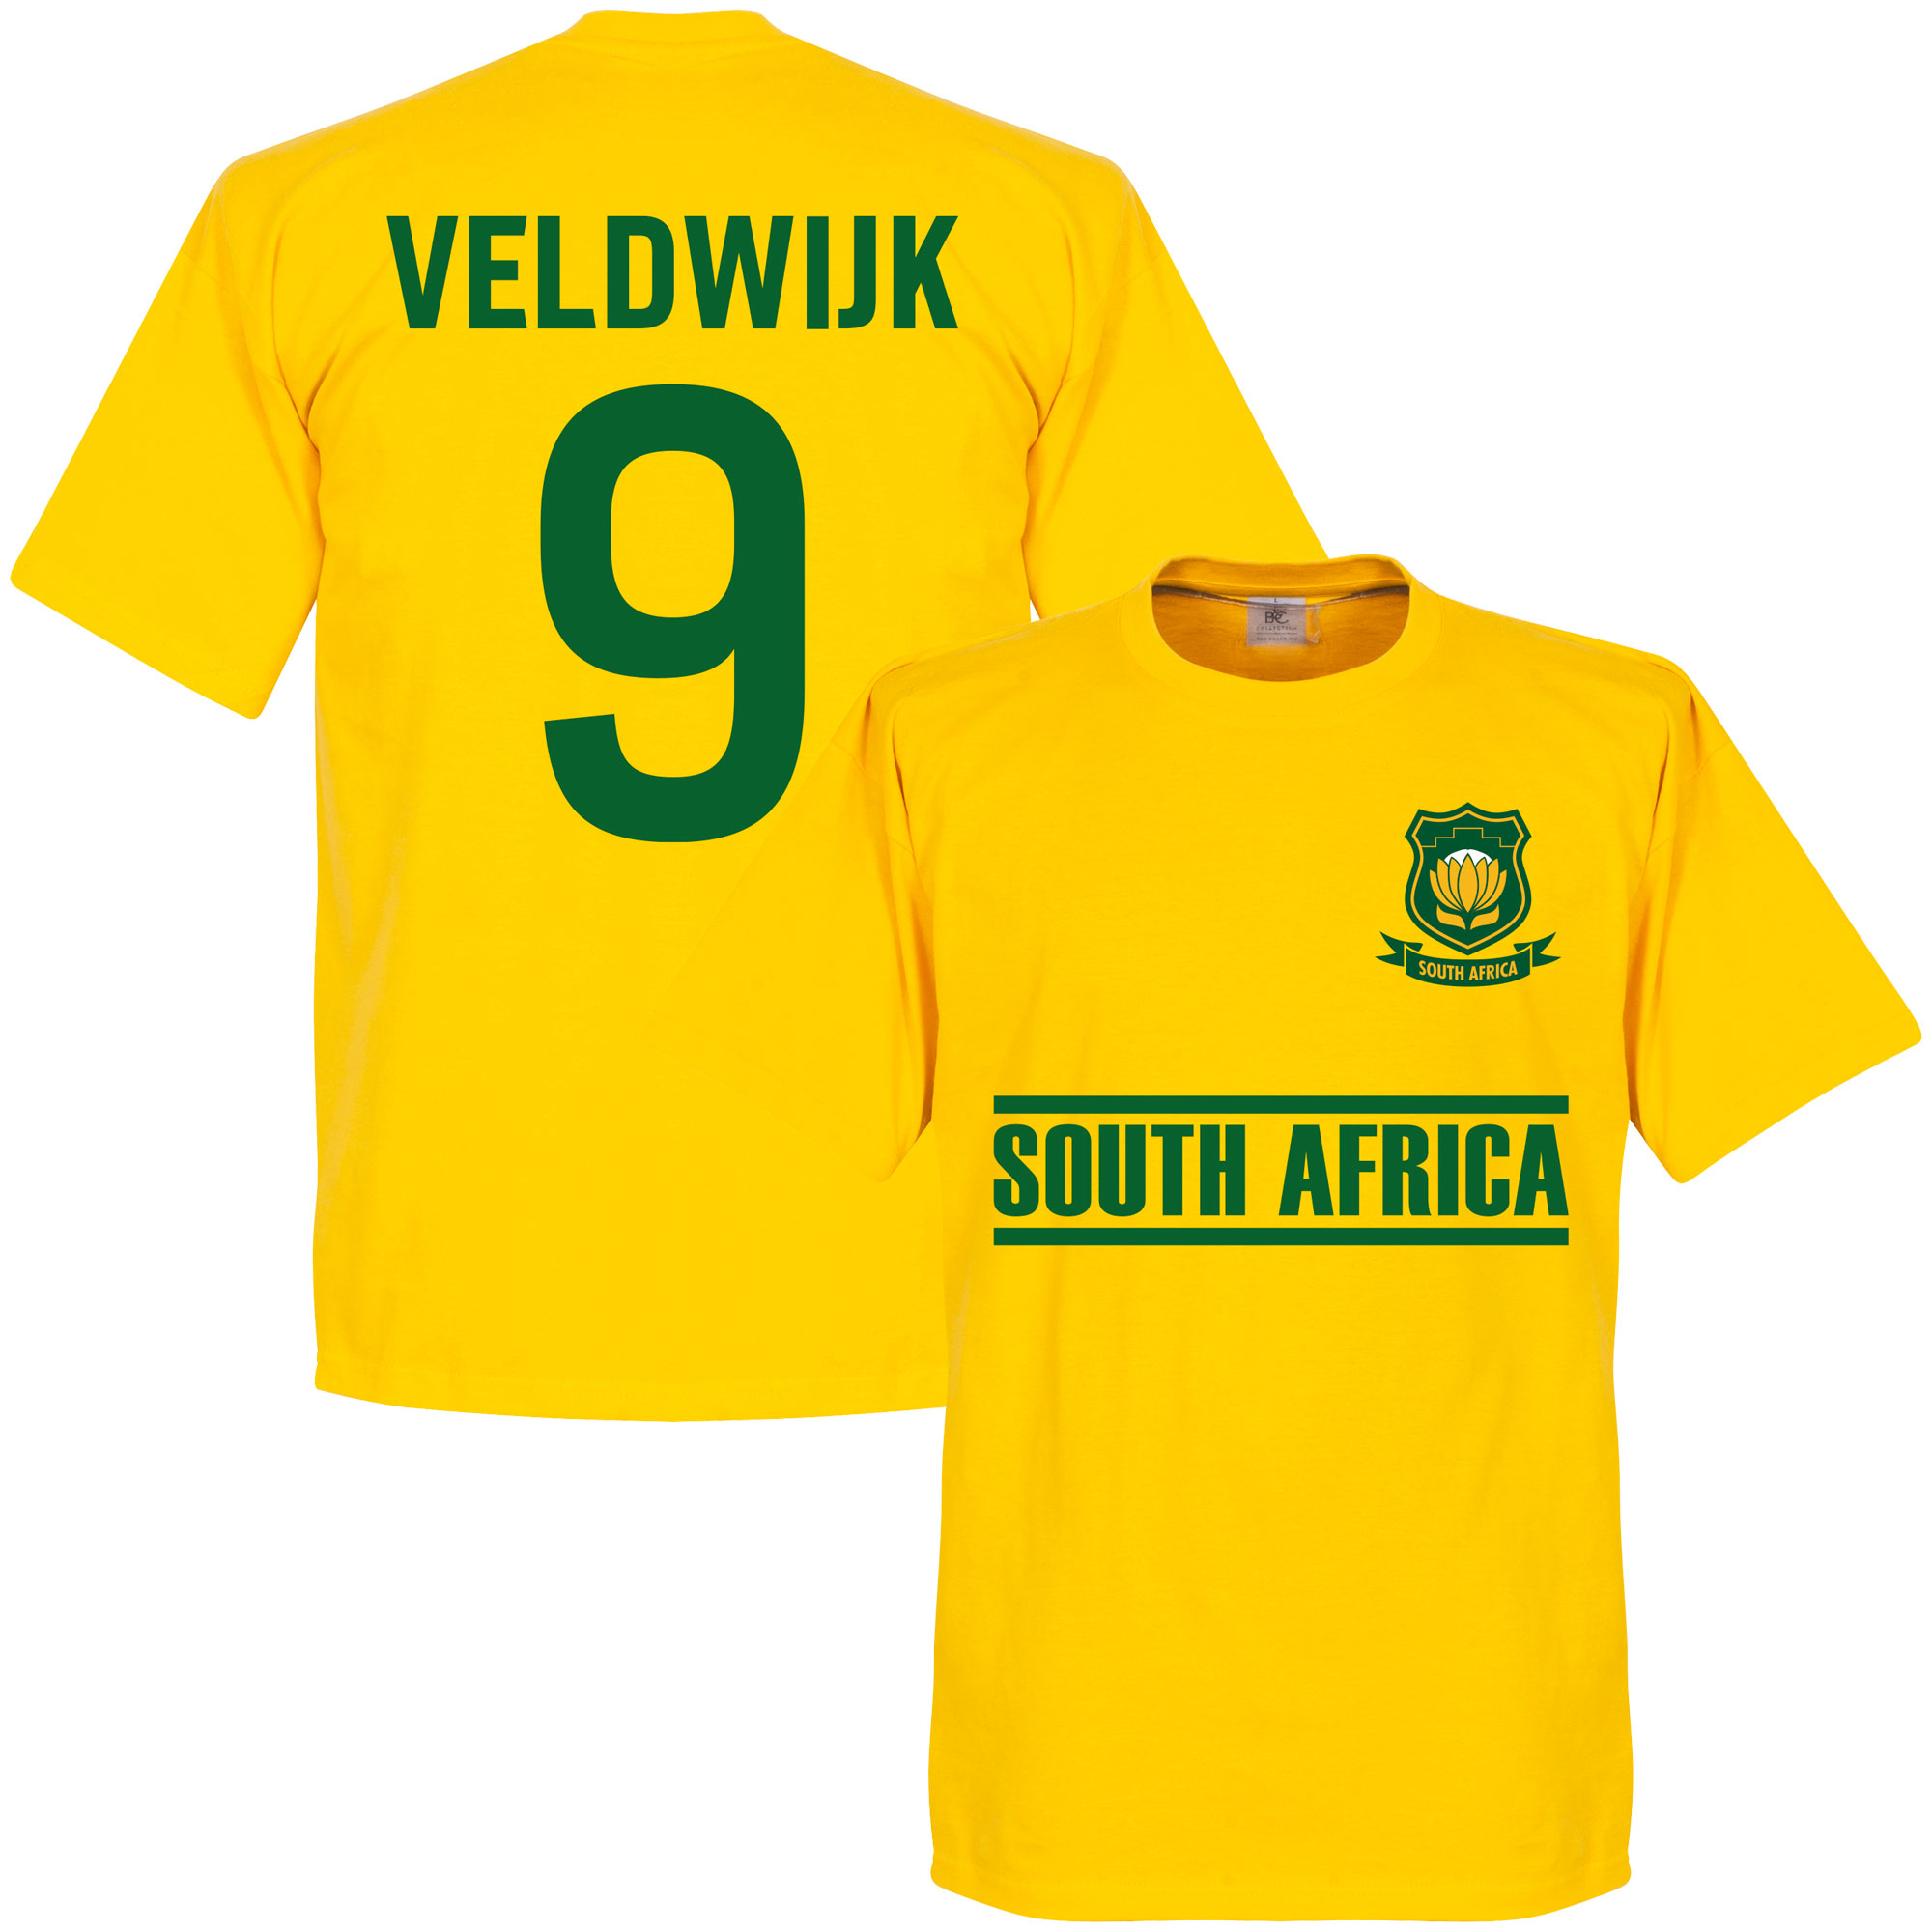 South Africa Veldwuk Team Tee - Yellow - XXL